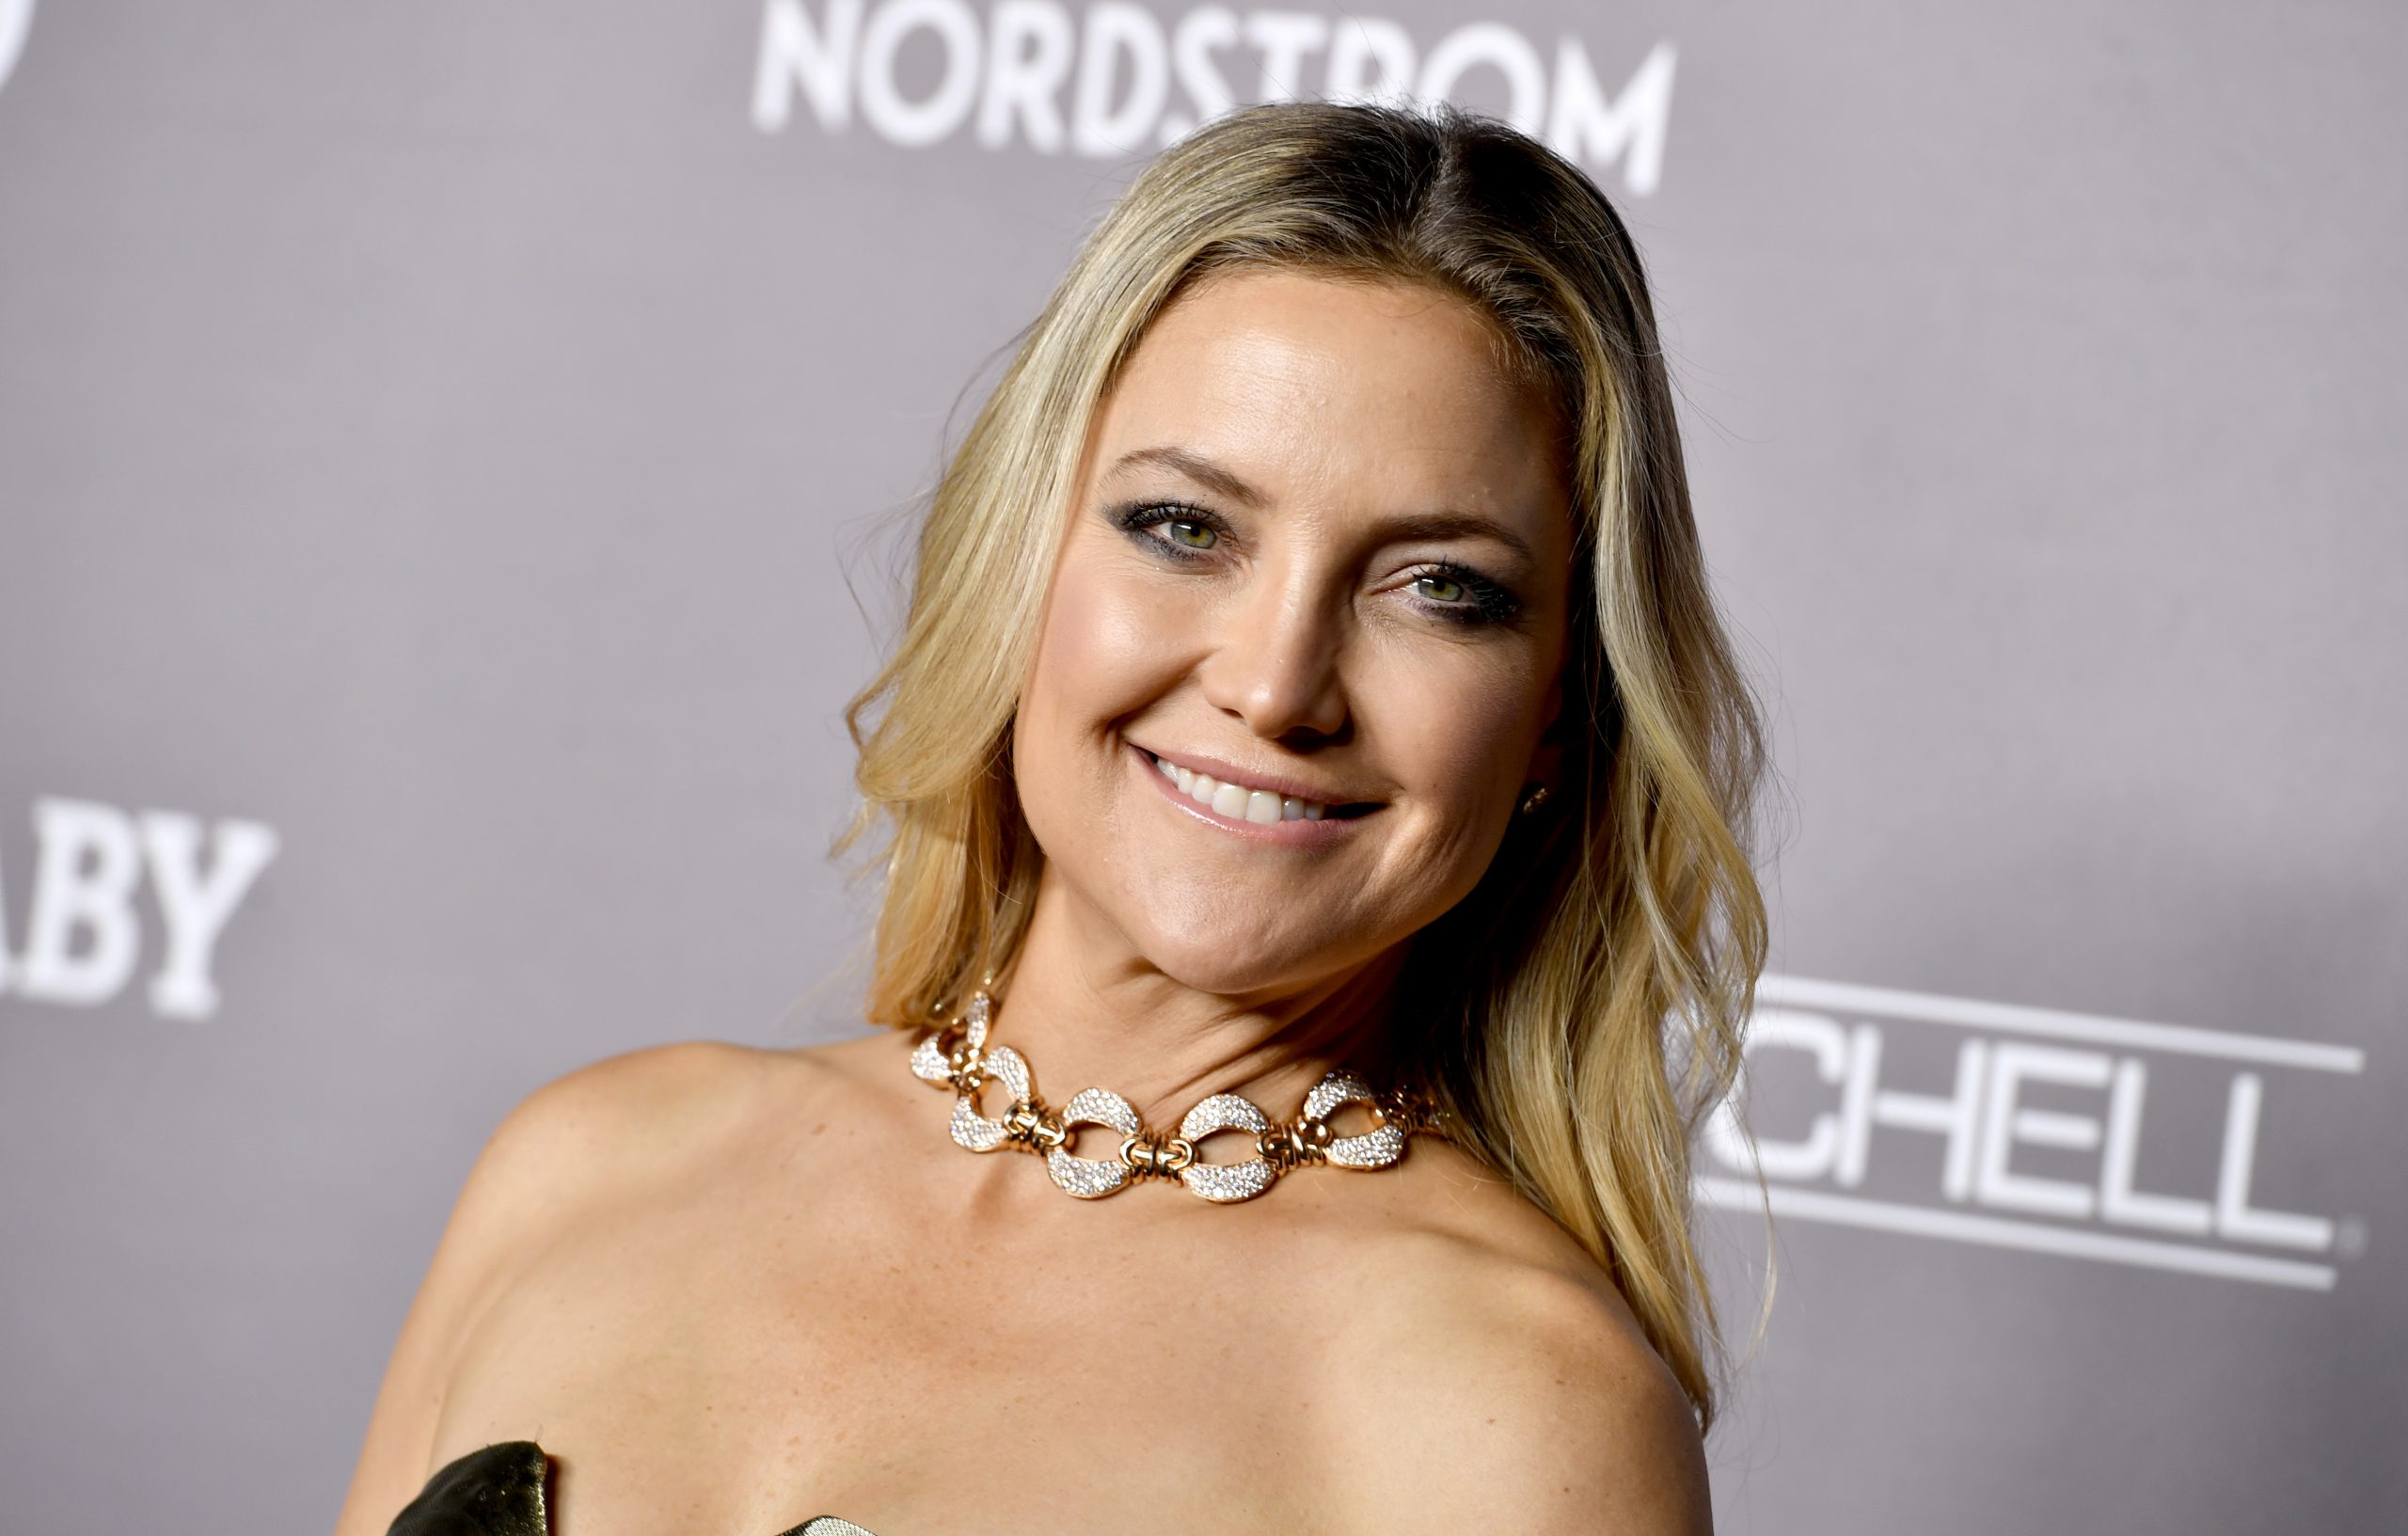 The Hollywood Reporter is exclusively reporting that Kate Hudson is the latest name to join the cast of Rian Johnson's upcoming sequel to Knives Out.